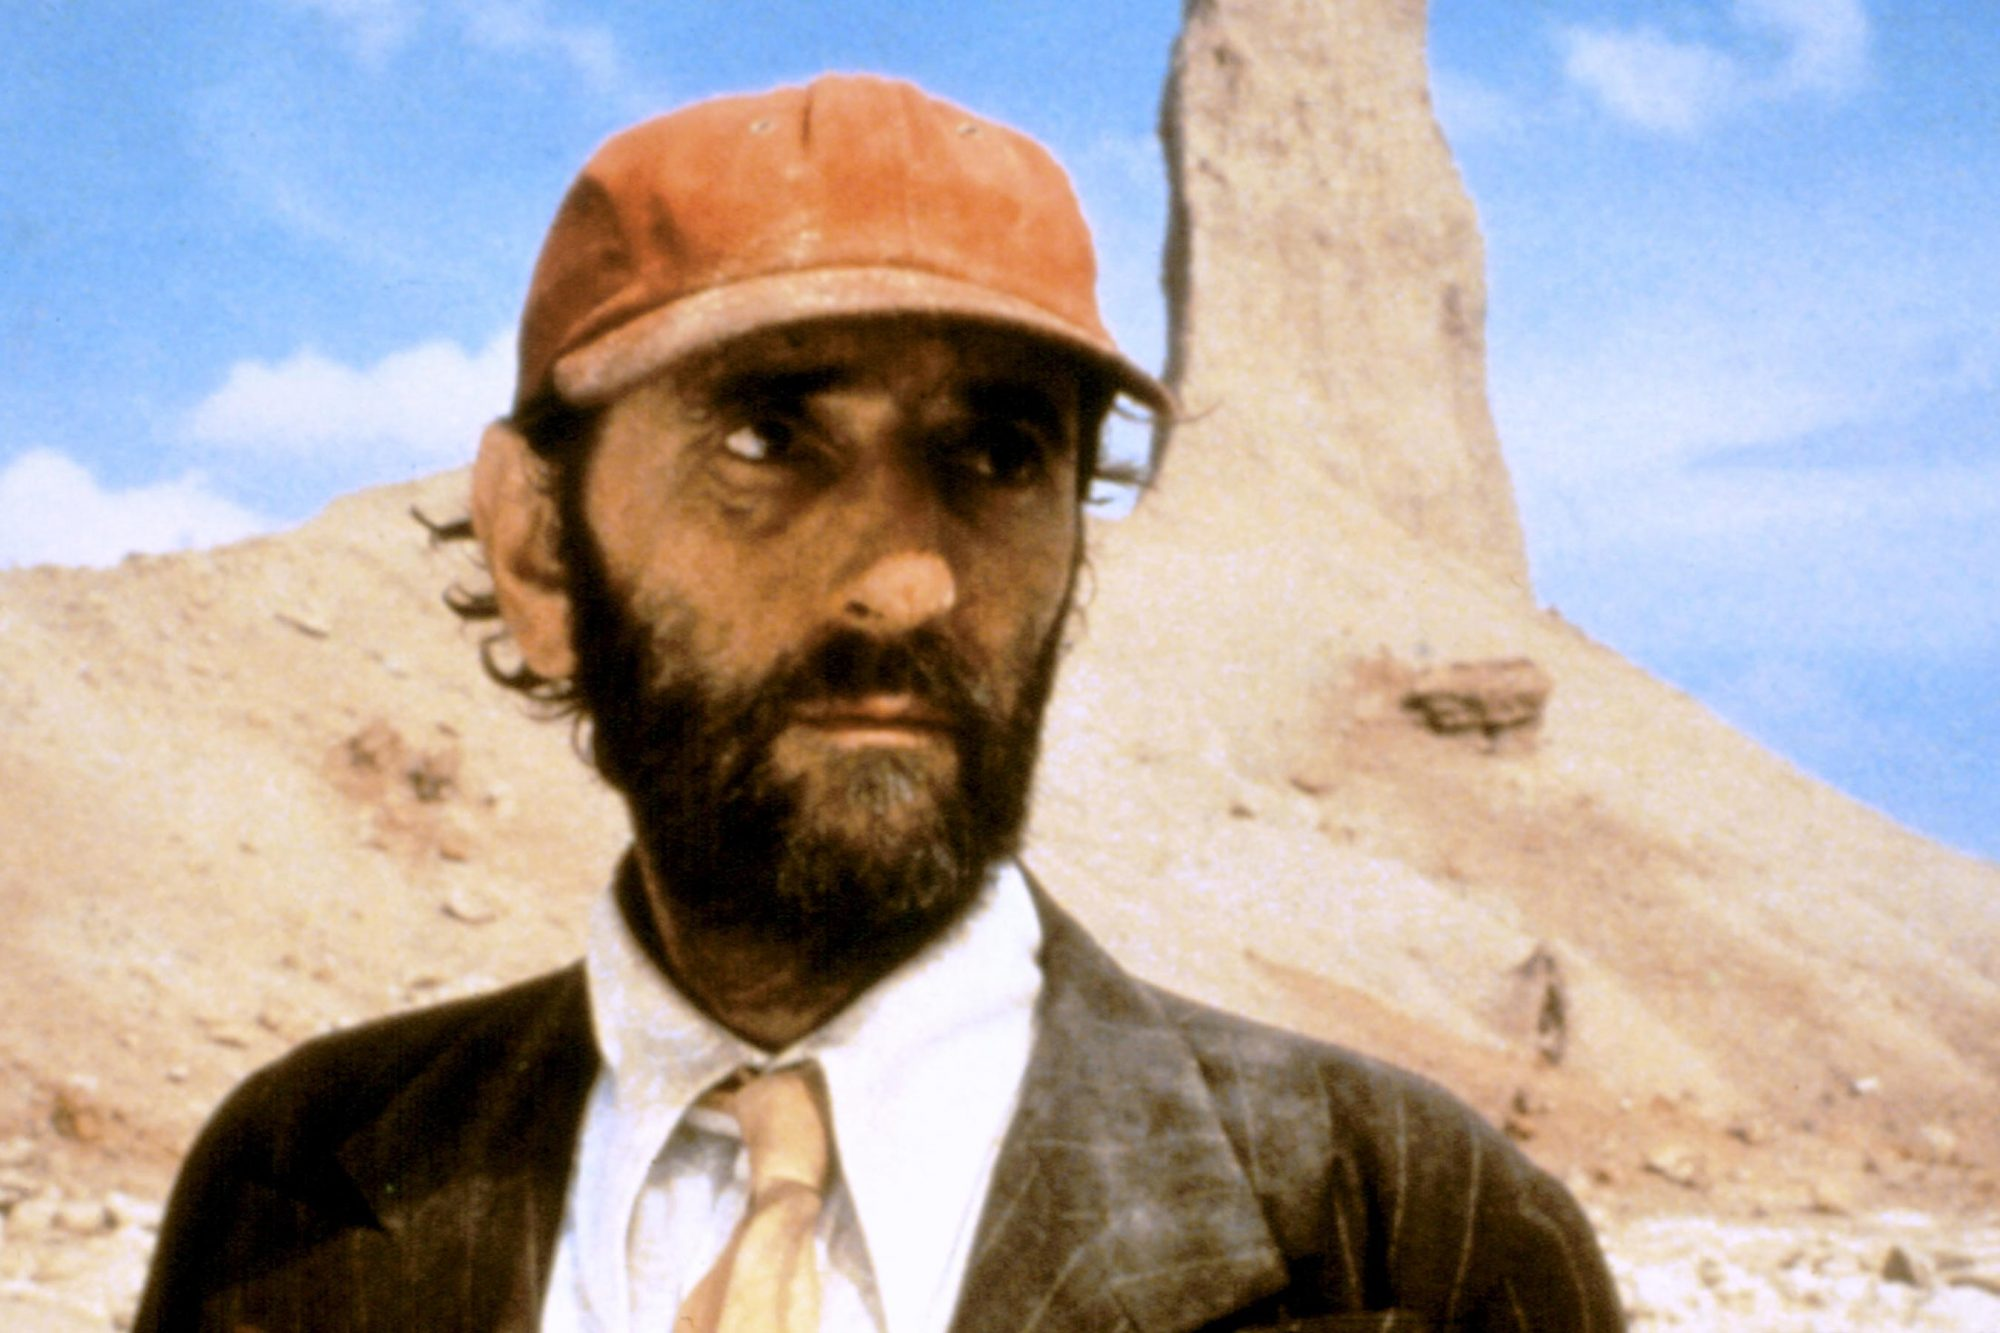 Harry Dean Stanton in 1984's Paris, Texas